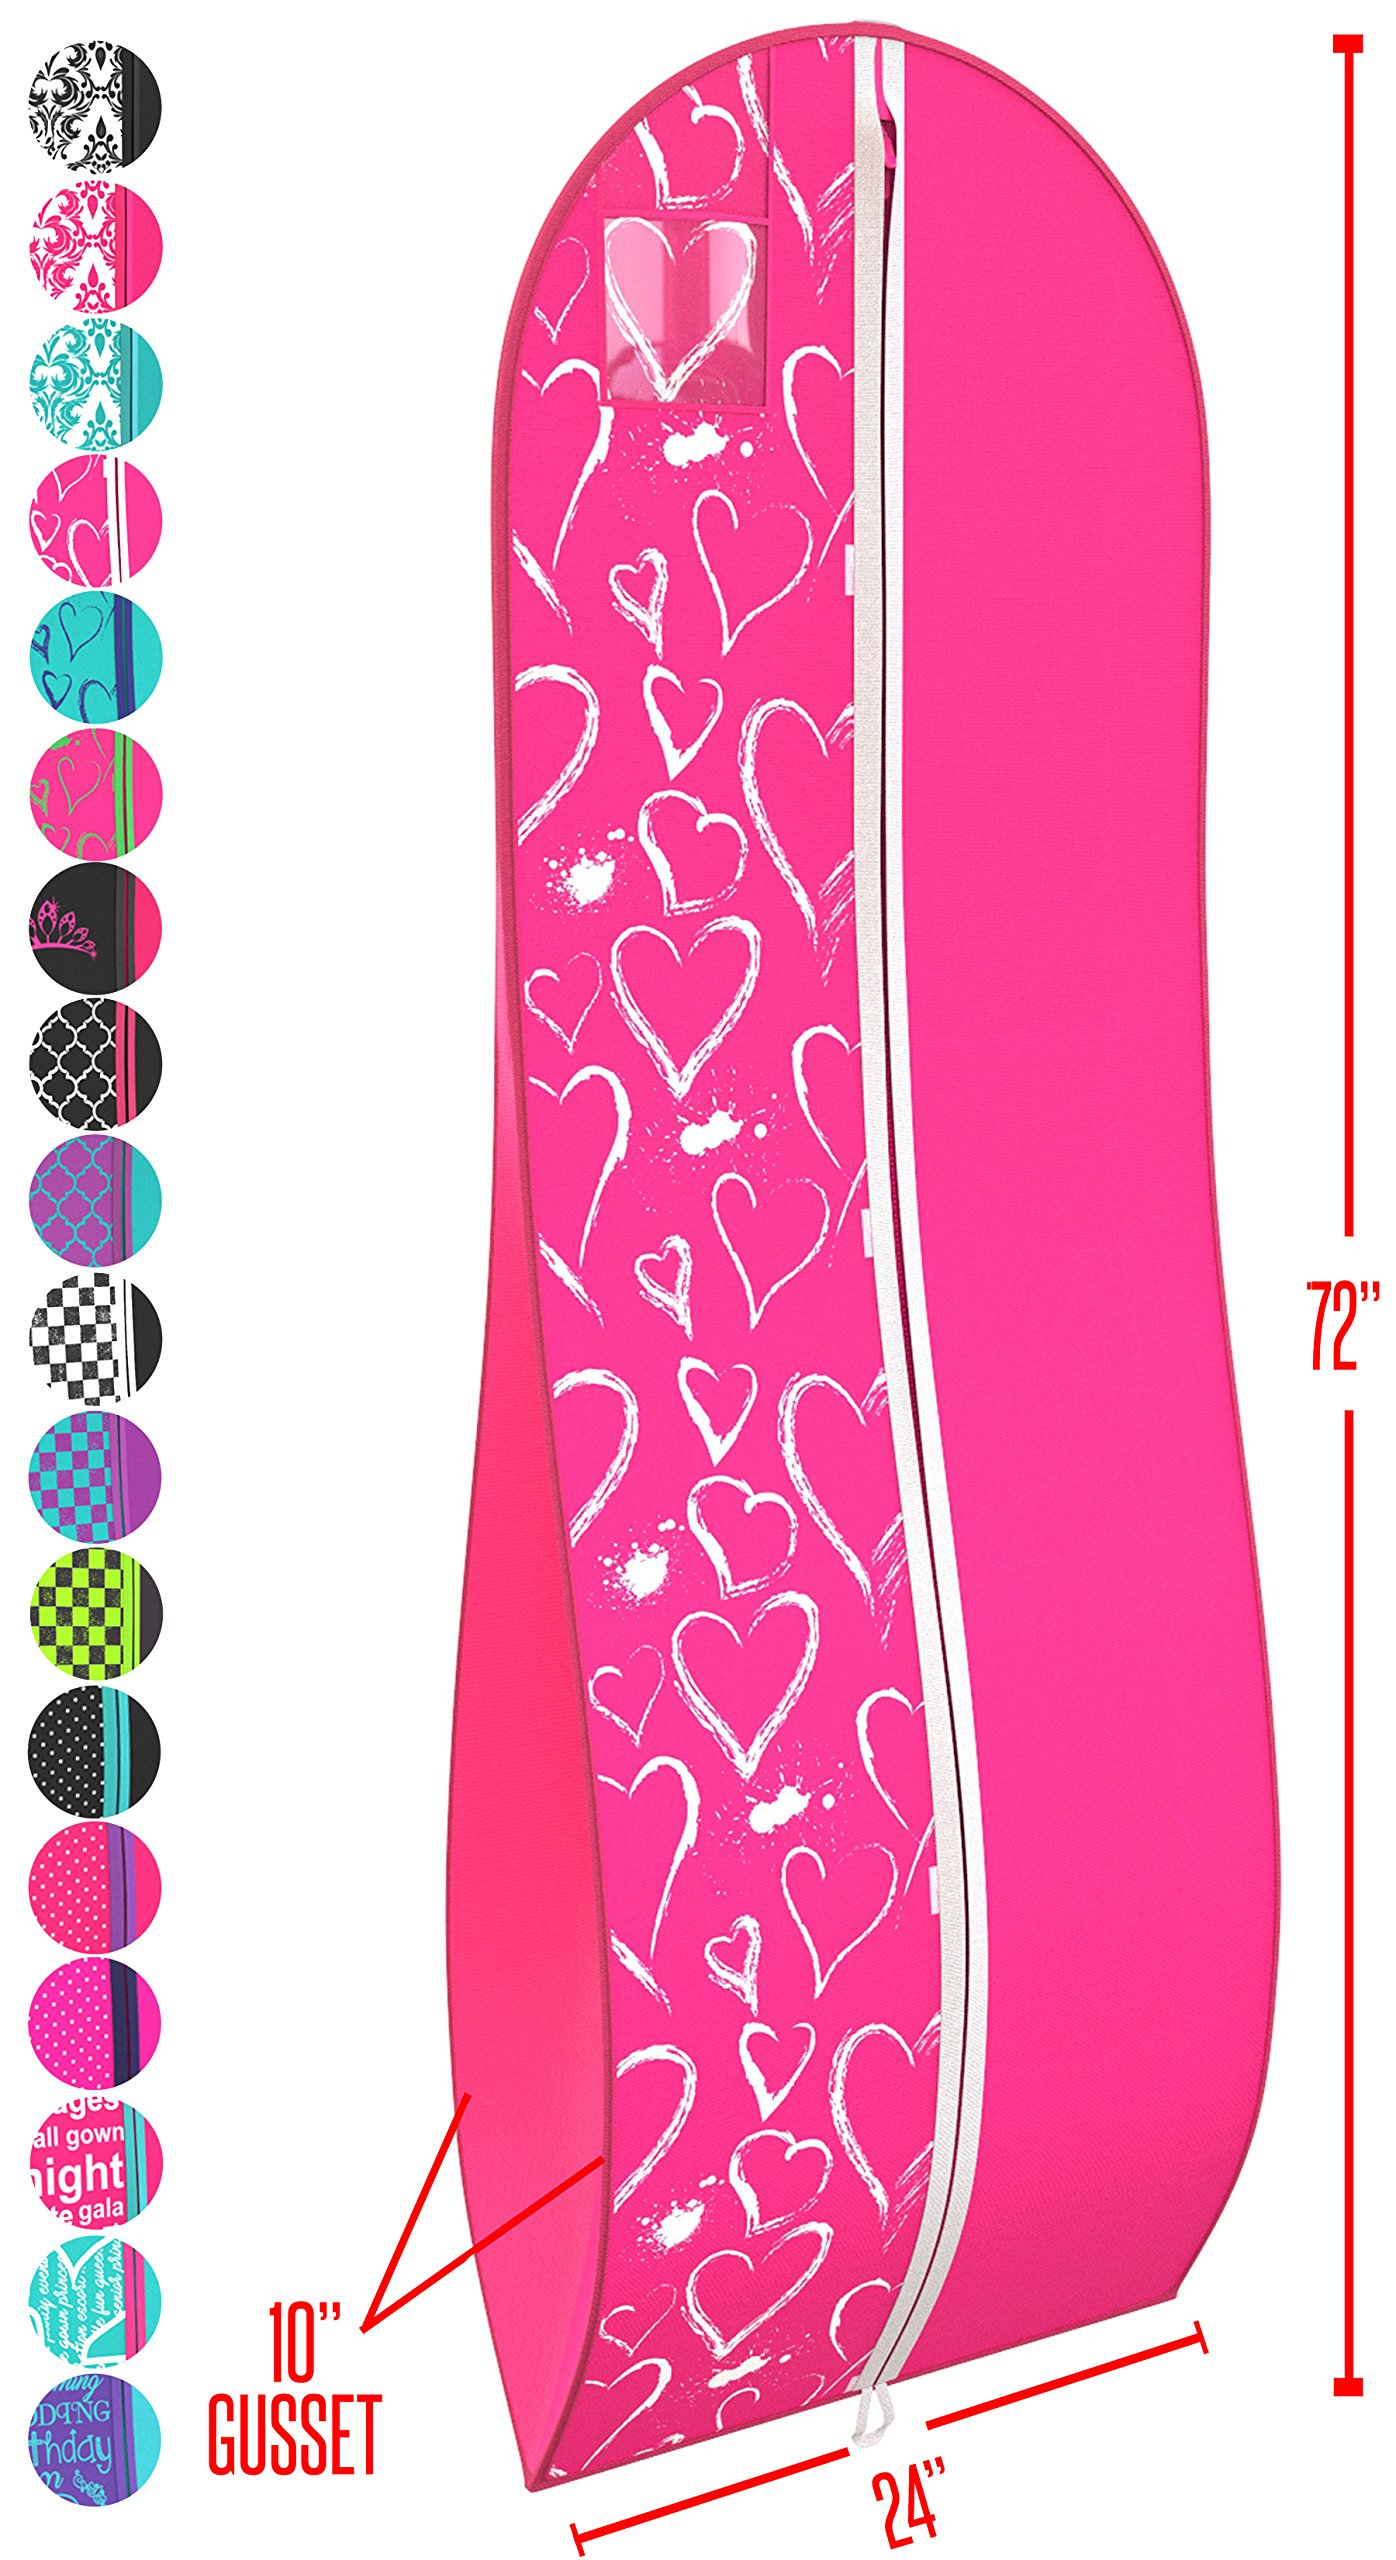 Women's Dress and Gown Garment Bag - Fuchsia and White Hearts -by Your Bags